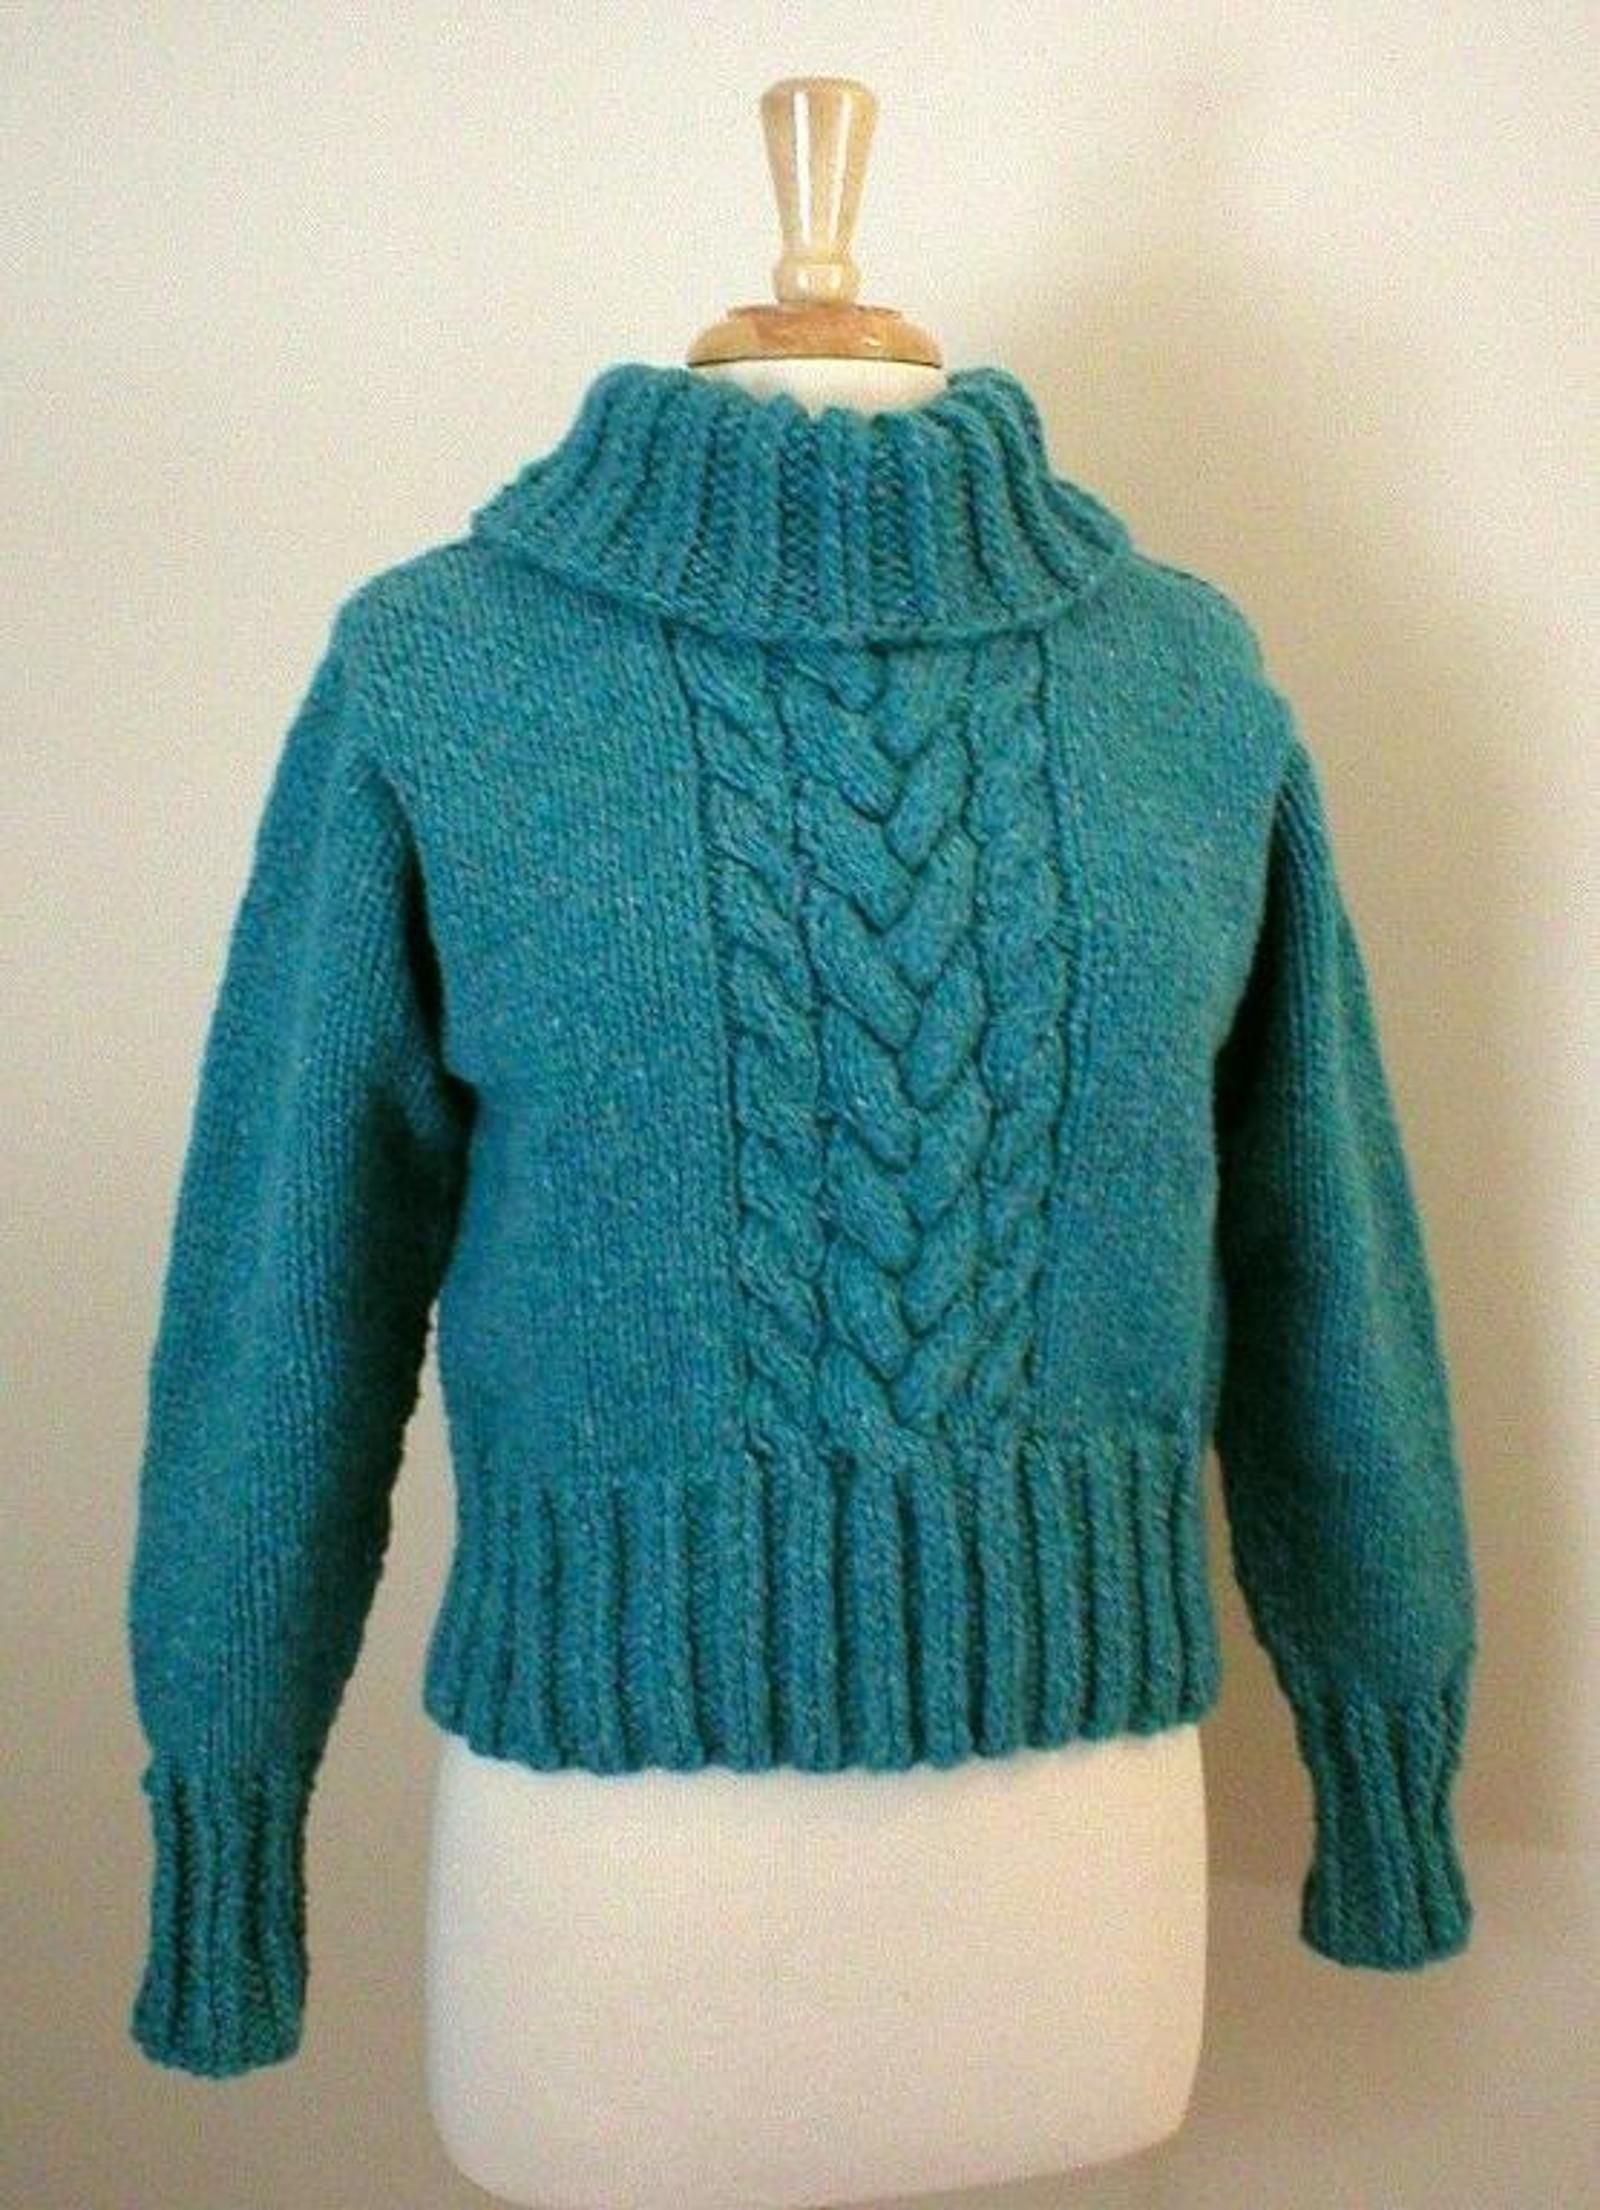 12 Trendy Cropped Sweater Knitting Patterns for Summer   Sweater ...